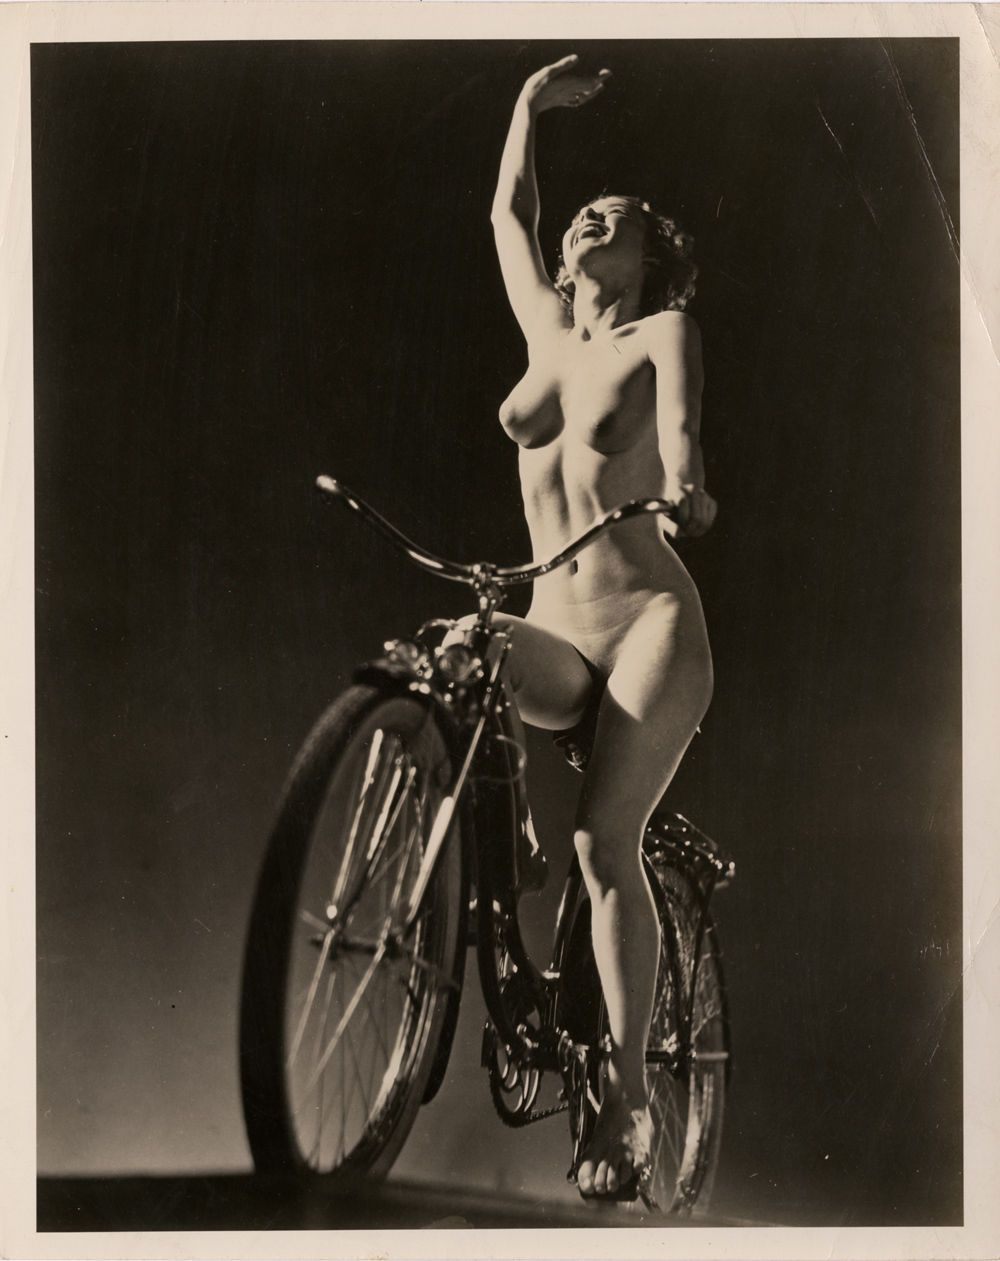 VINTAGE PIN UP PHOTO BUSTY NUDE WOMAN BACK SMILING POSING ADULT ONLY ITEM   bji       Pinterest